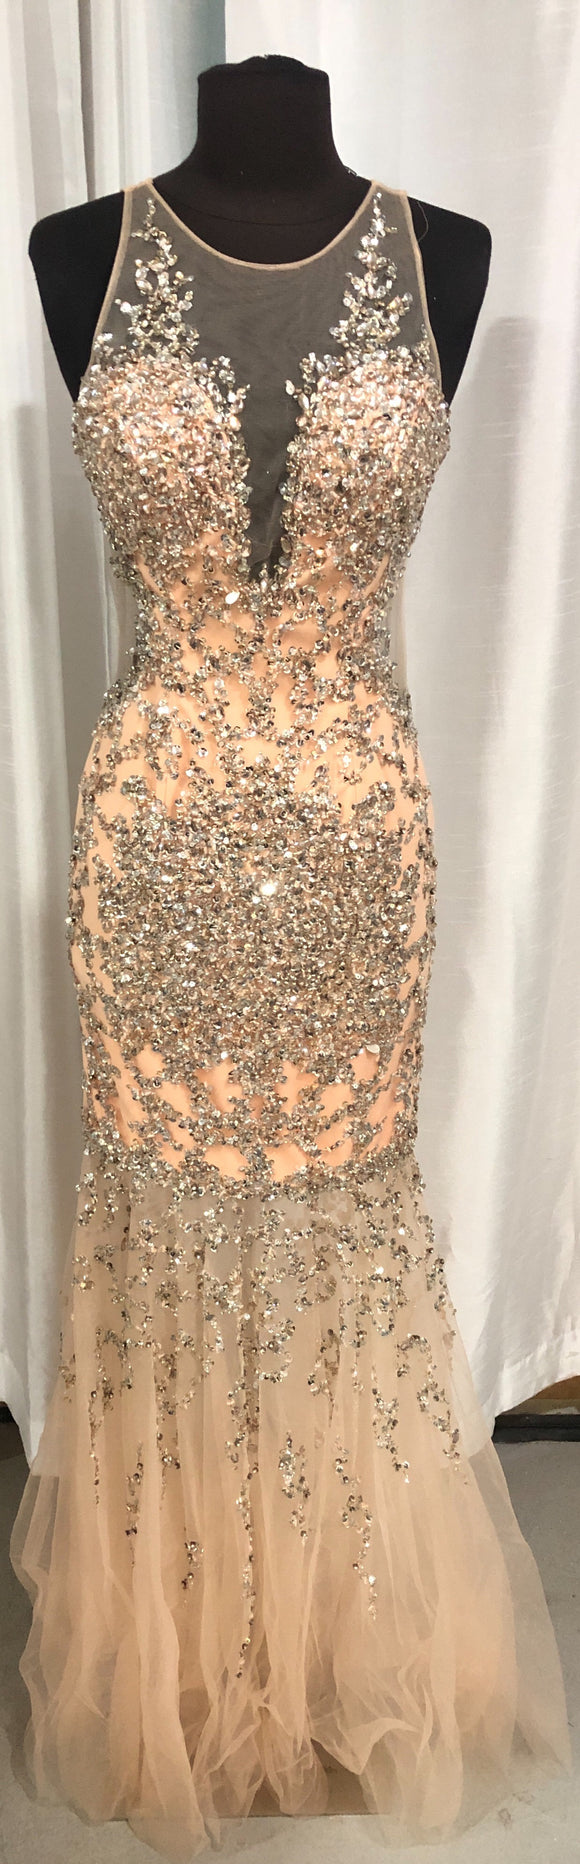 JOVANI Long Peach & silver Embellished Mermaid Gown Size 4